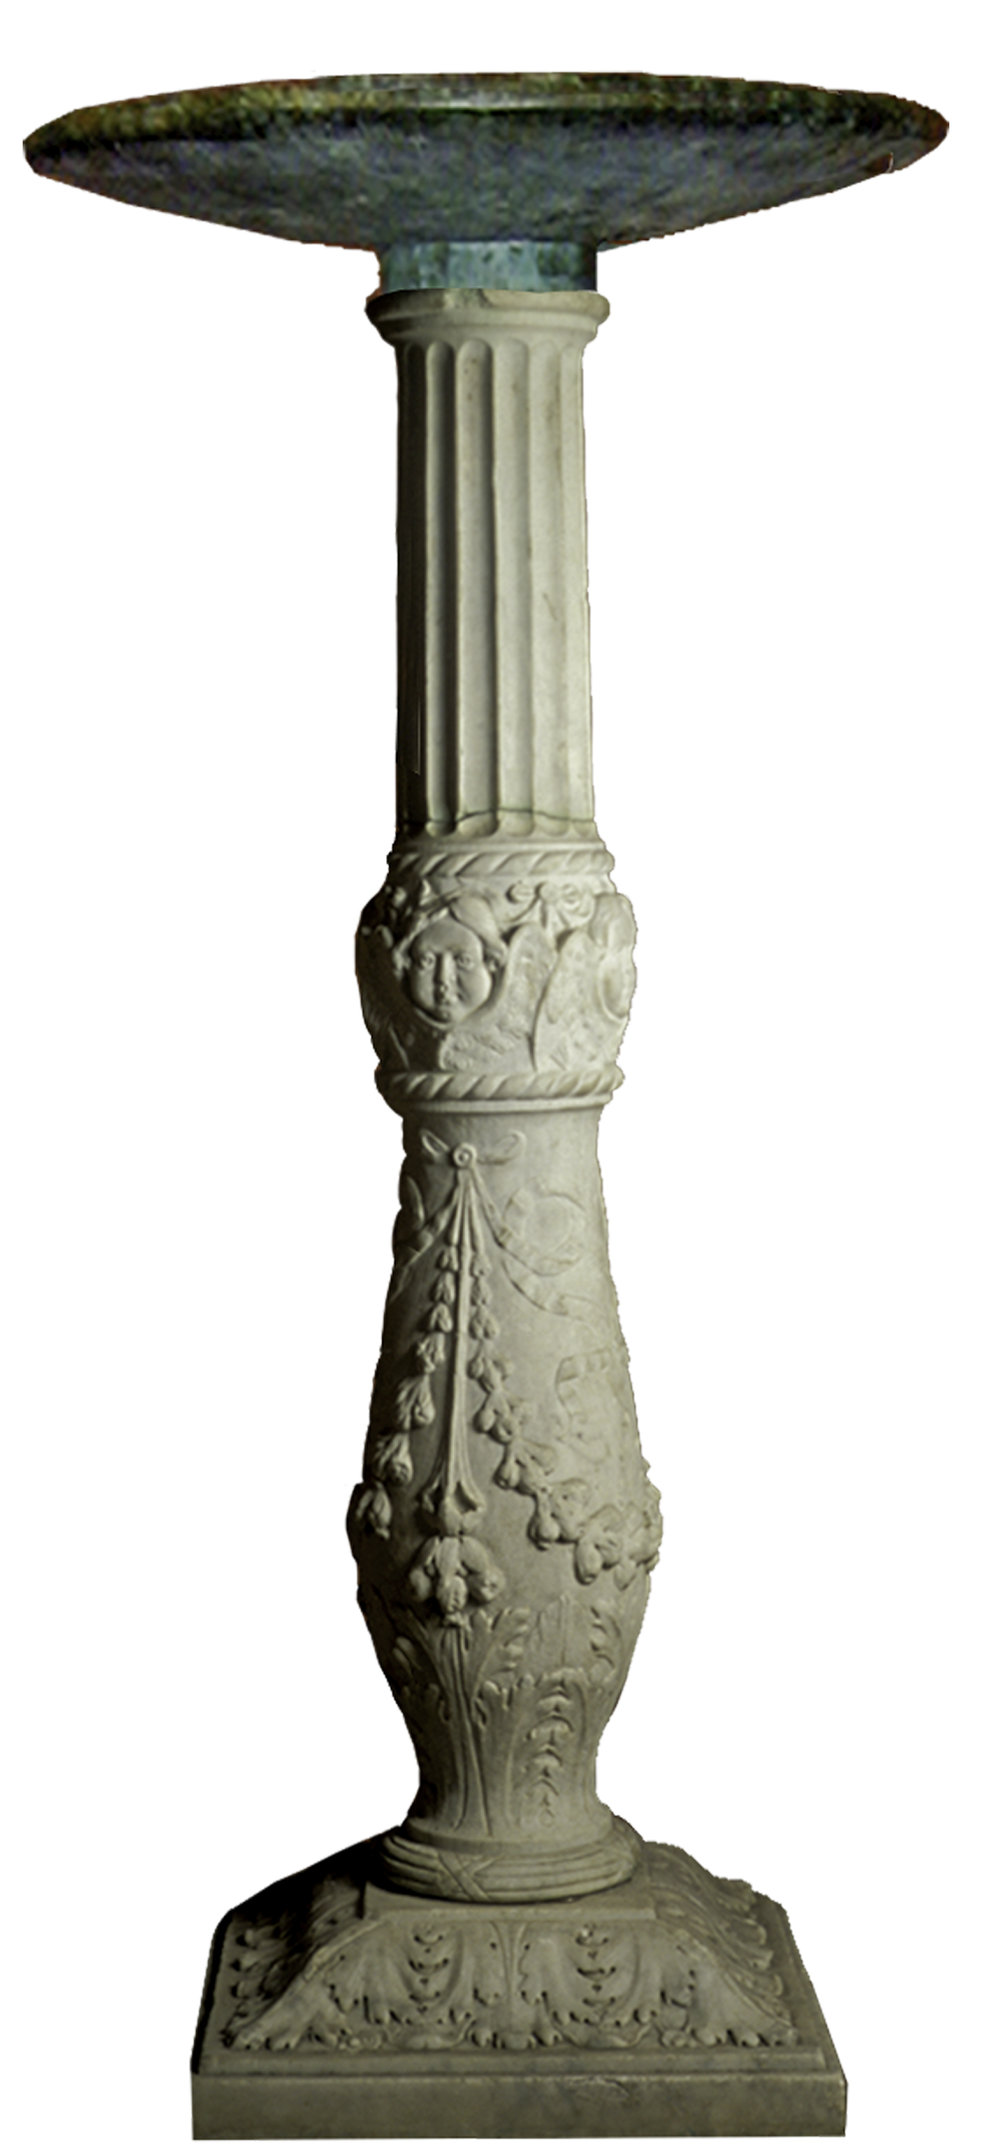 Hand carved stone post and plinth support with bronze birdbath. Italian 19th century. H- 48in  Base 16in sq. Bath OD 22in